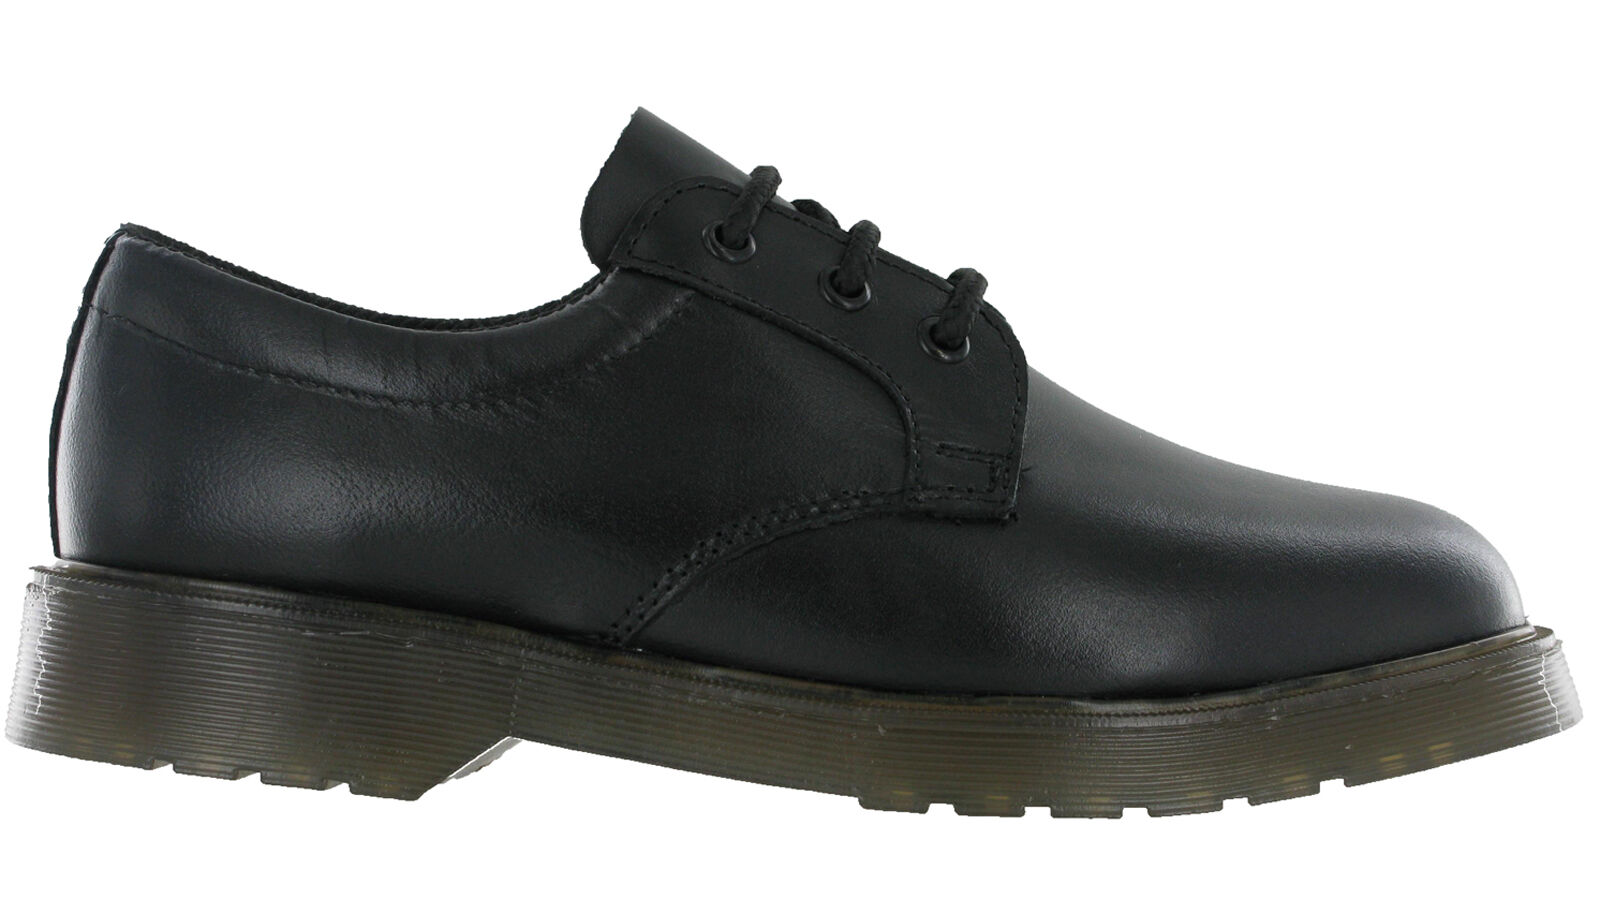 MENS GRAFTERS BLACK LEATHER 3 EYELET LACE UP SECURITY  UNIFORM SHOES M162A